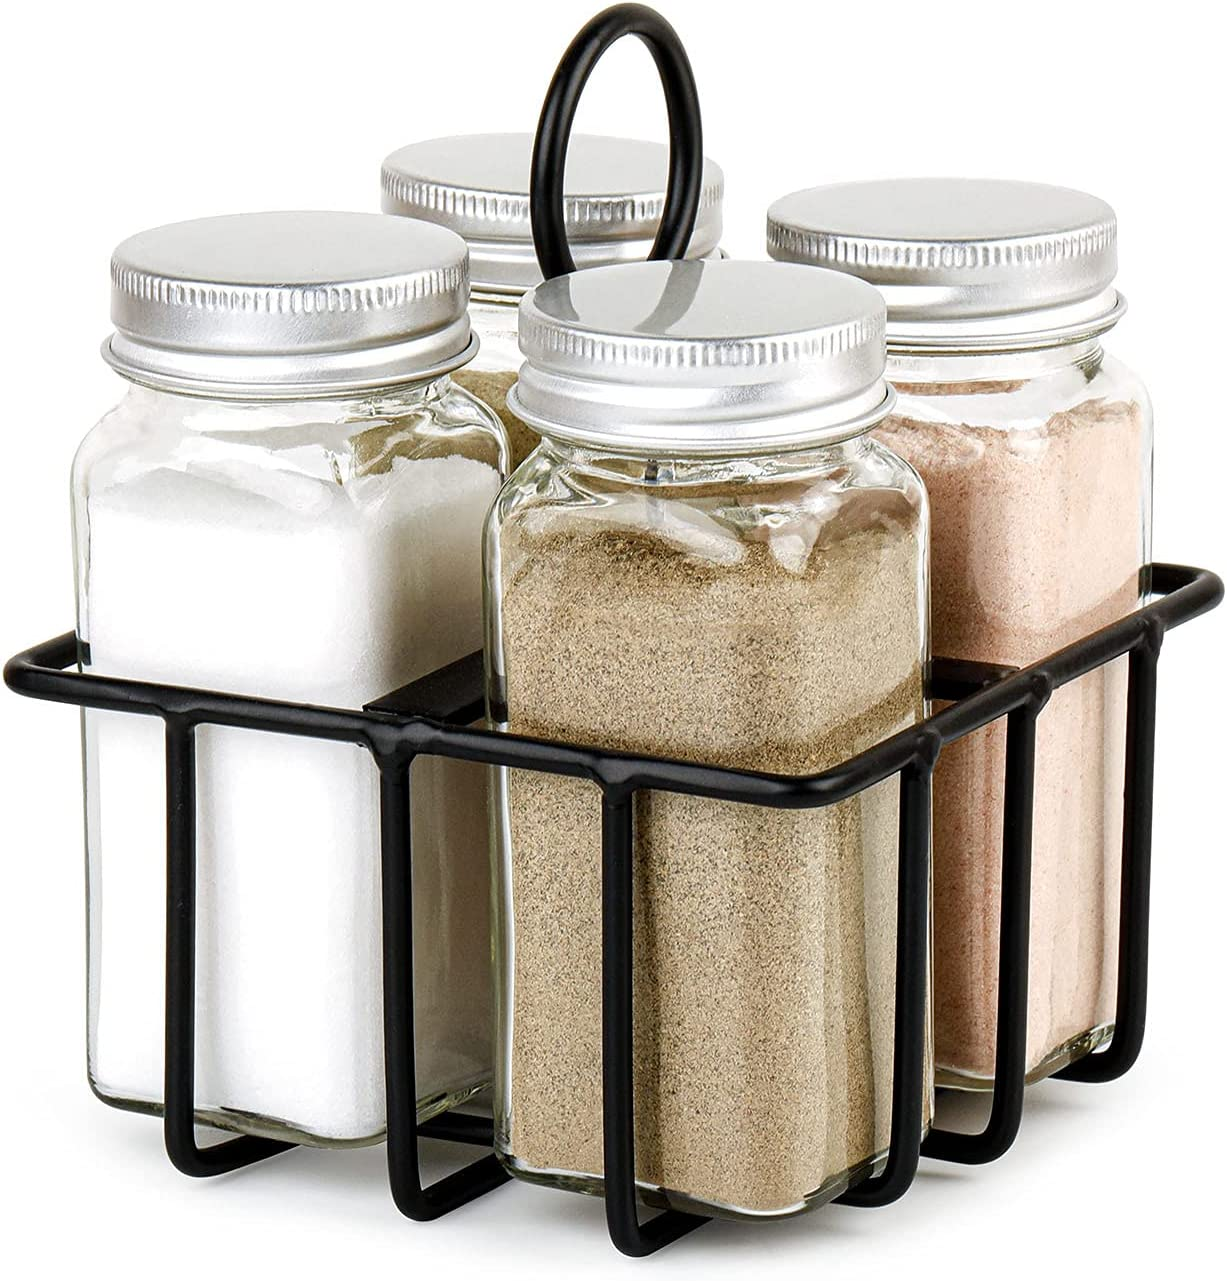 UEJUNBO Salt and Pepper Shaker With Metal Caddy 4 Compartments Set,Farmhouse Decor,Shakers Moisture Proof Design,Easy to Clean and Refill,Suitable for home kitchen dining table Restaurants Gift